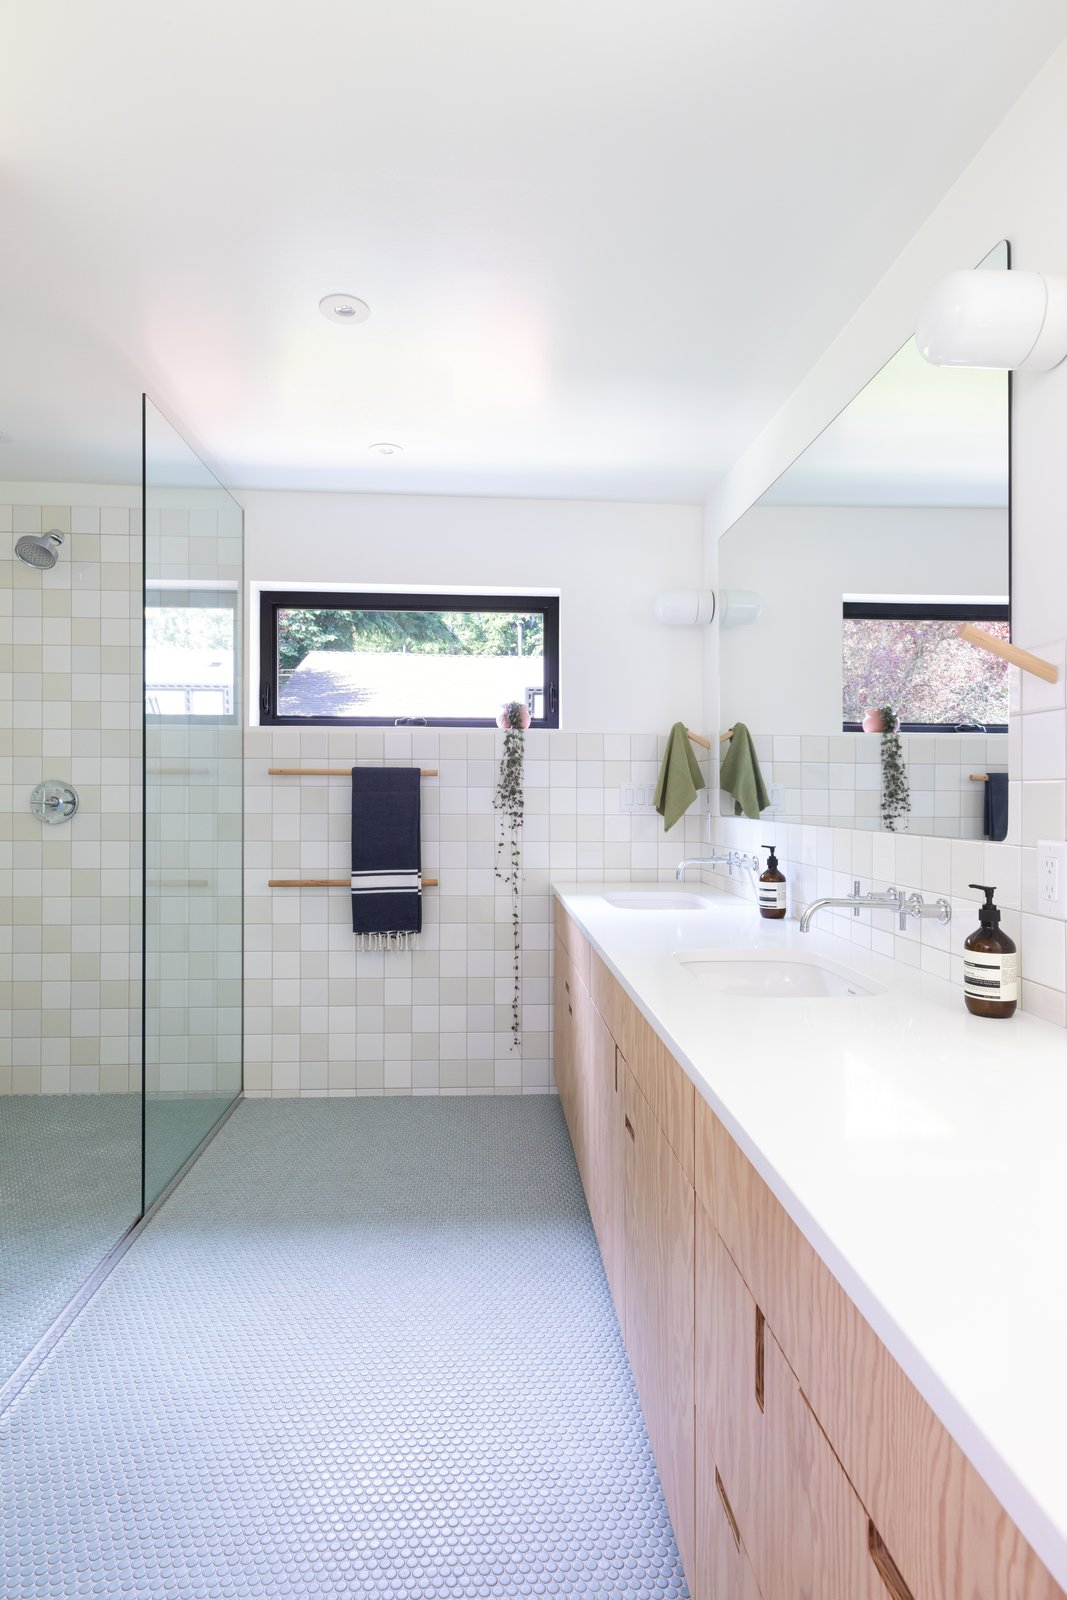 Graft2 House by Measured Architecture Master Bathroom